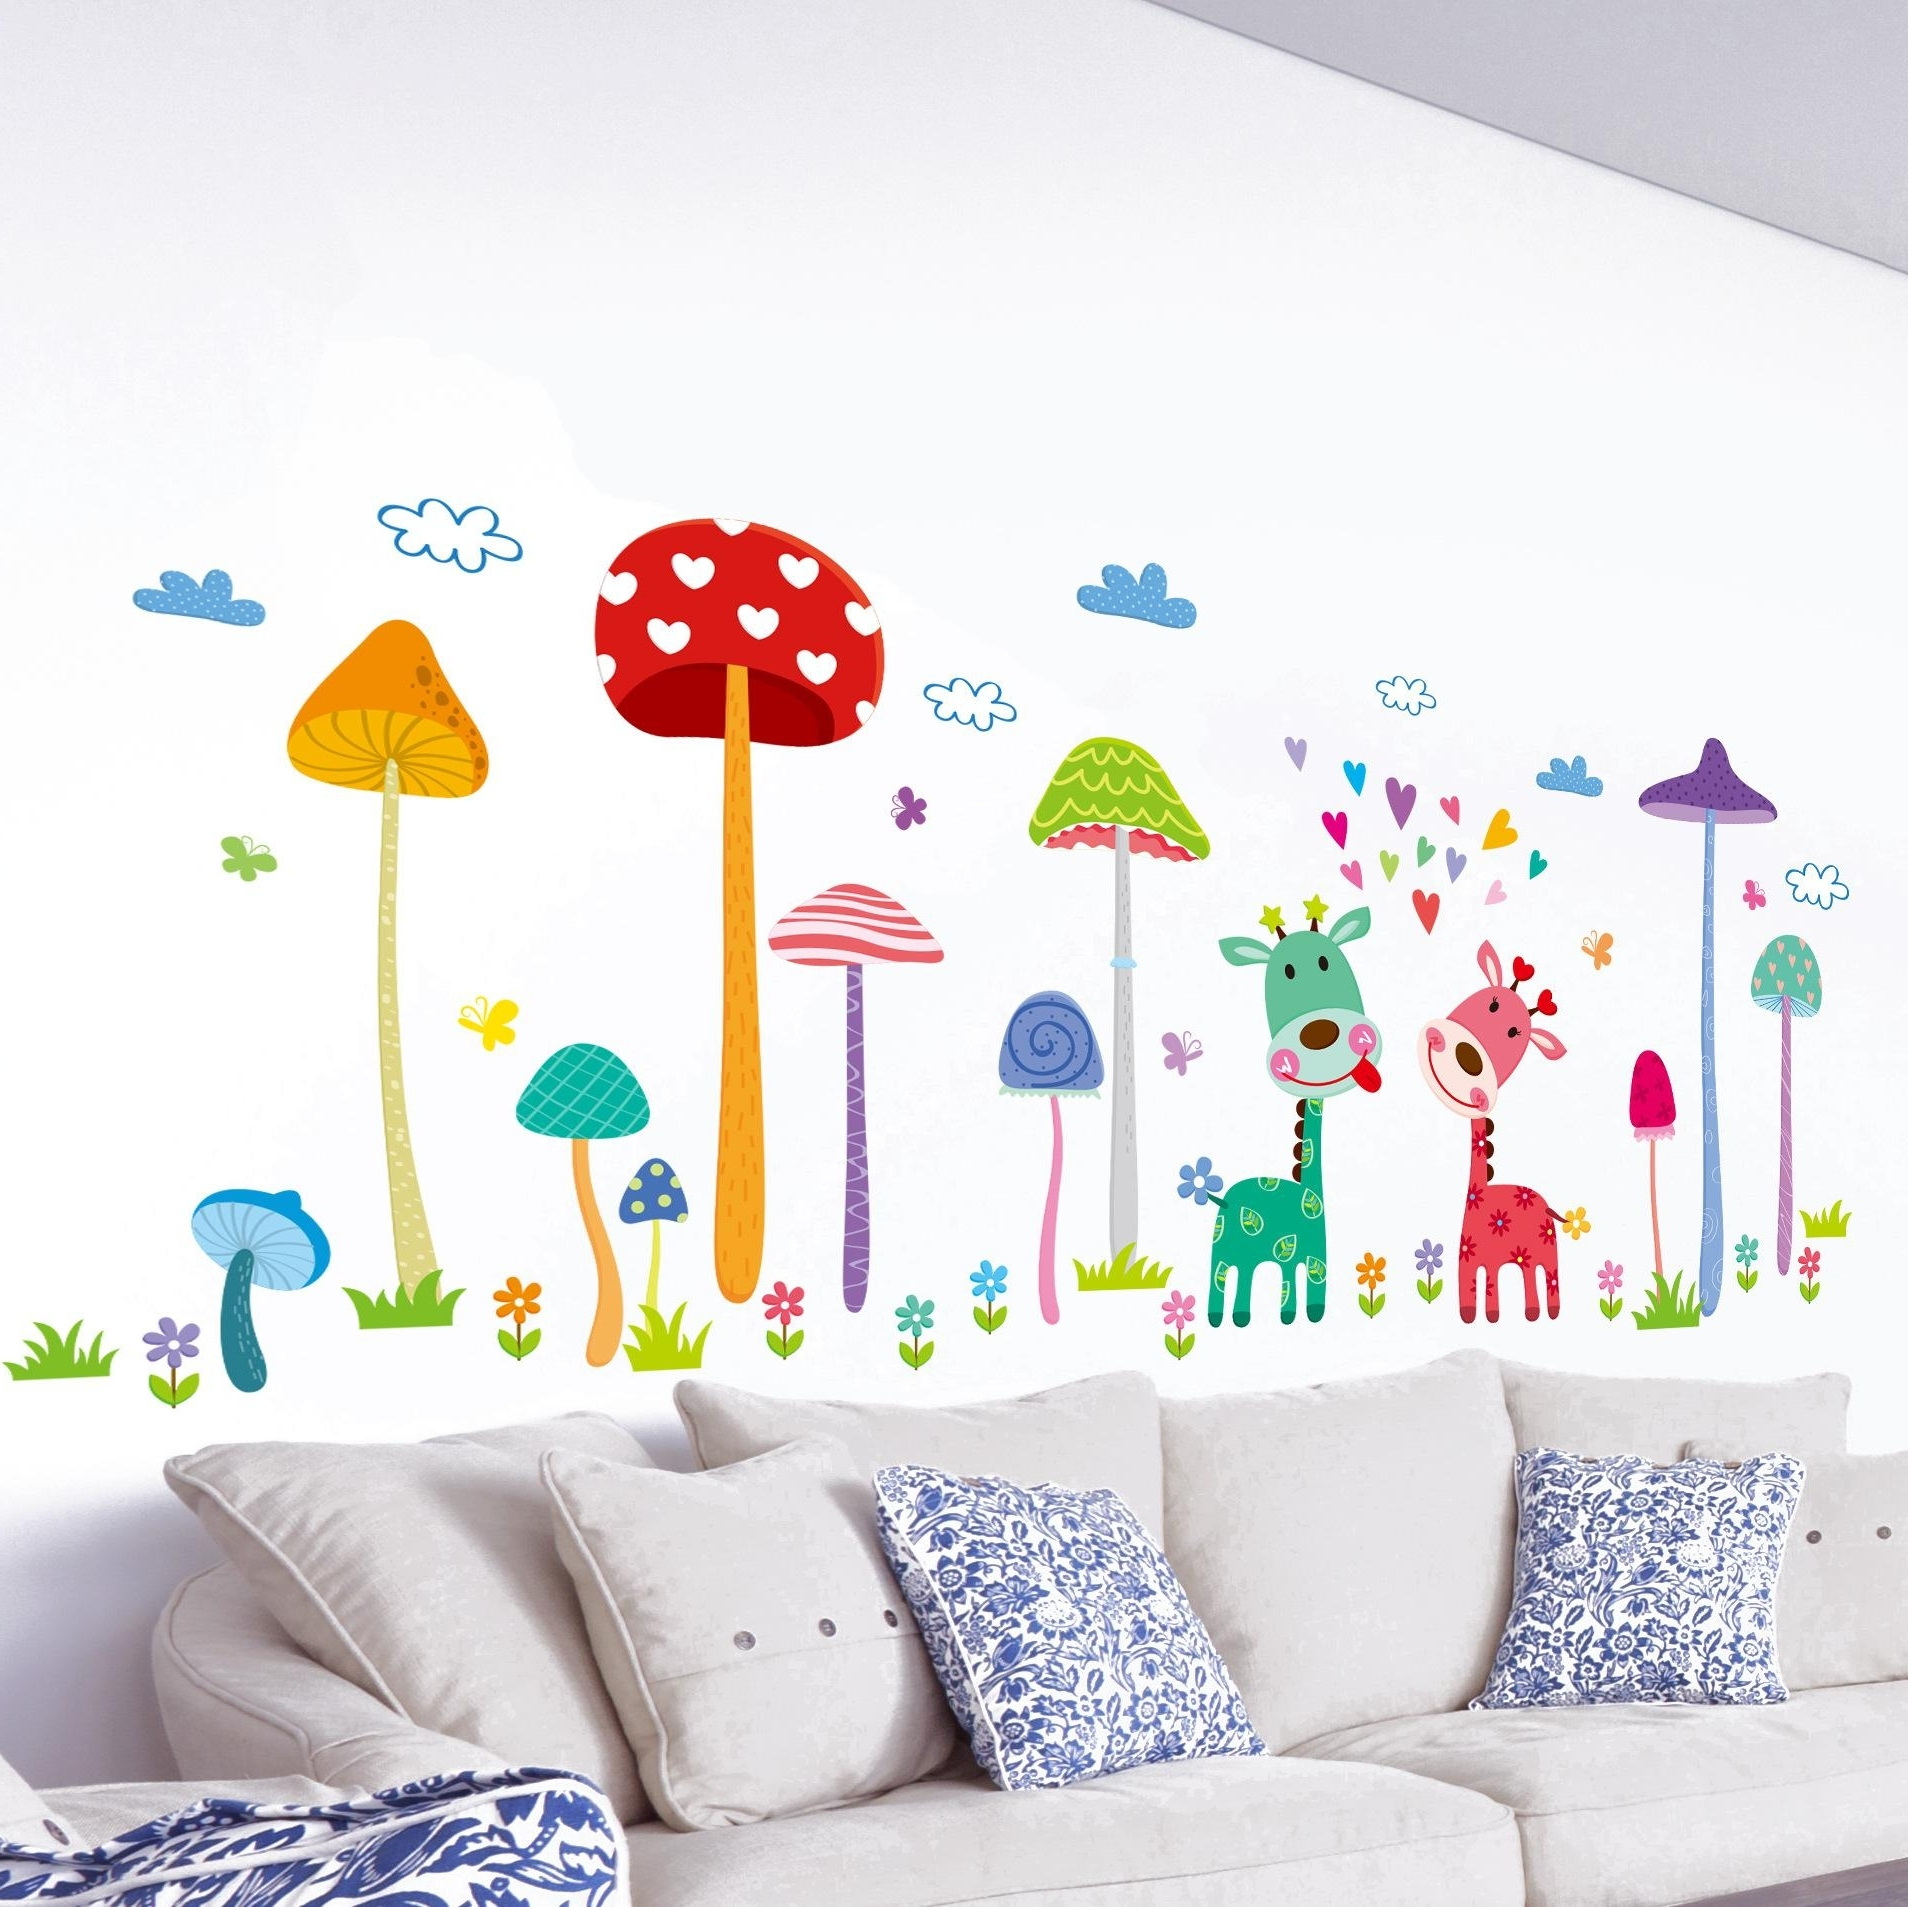 Children Wall Art In Most Up To Date Forest Mushroom Deer Home Wall Art Mural Decor Kids Babies Room (View 4 of 15)